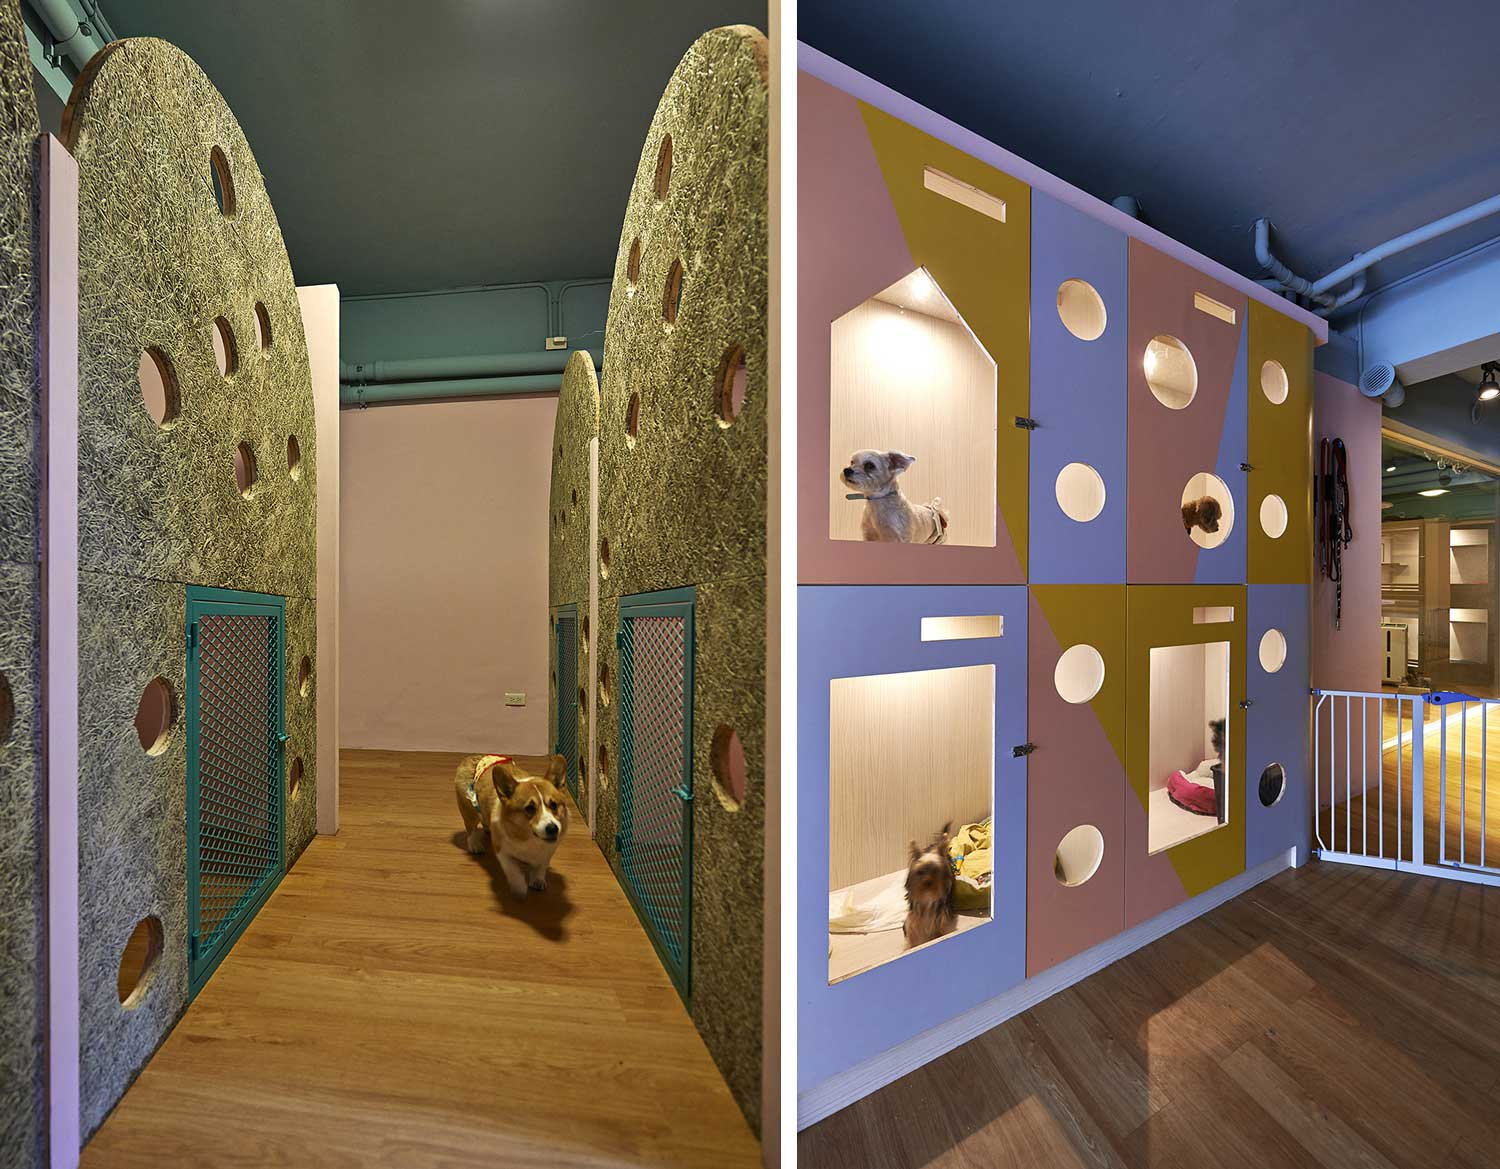 Petaholic Hotel by sms Design | Yellowtrace